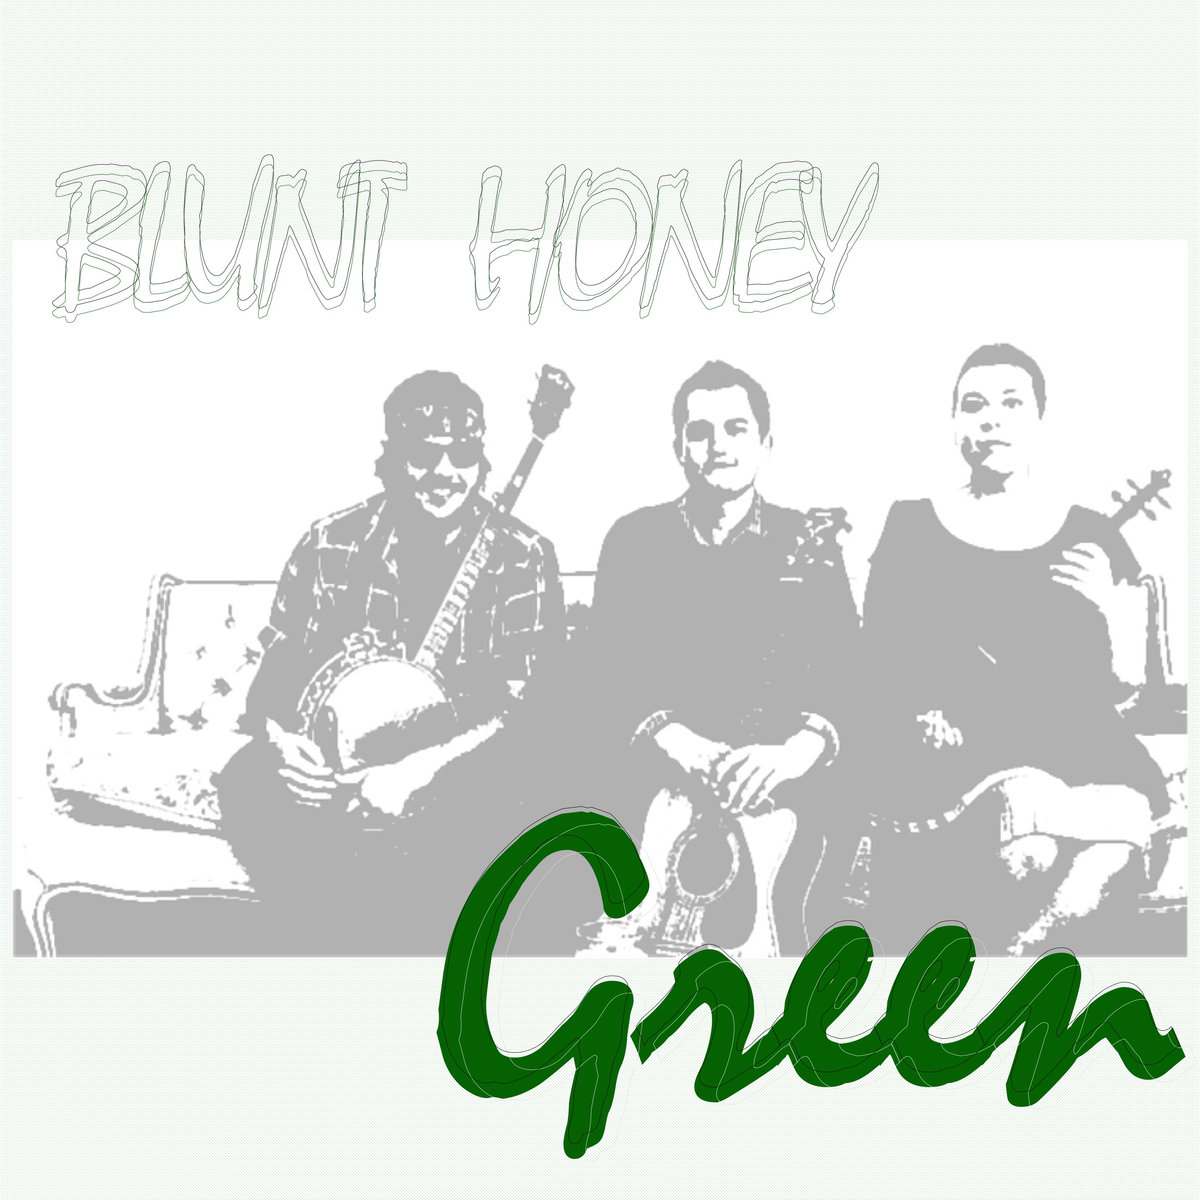 Blunt clipart fake. Honey by